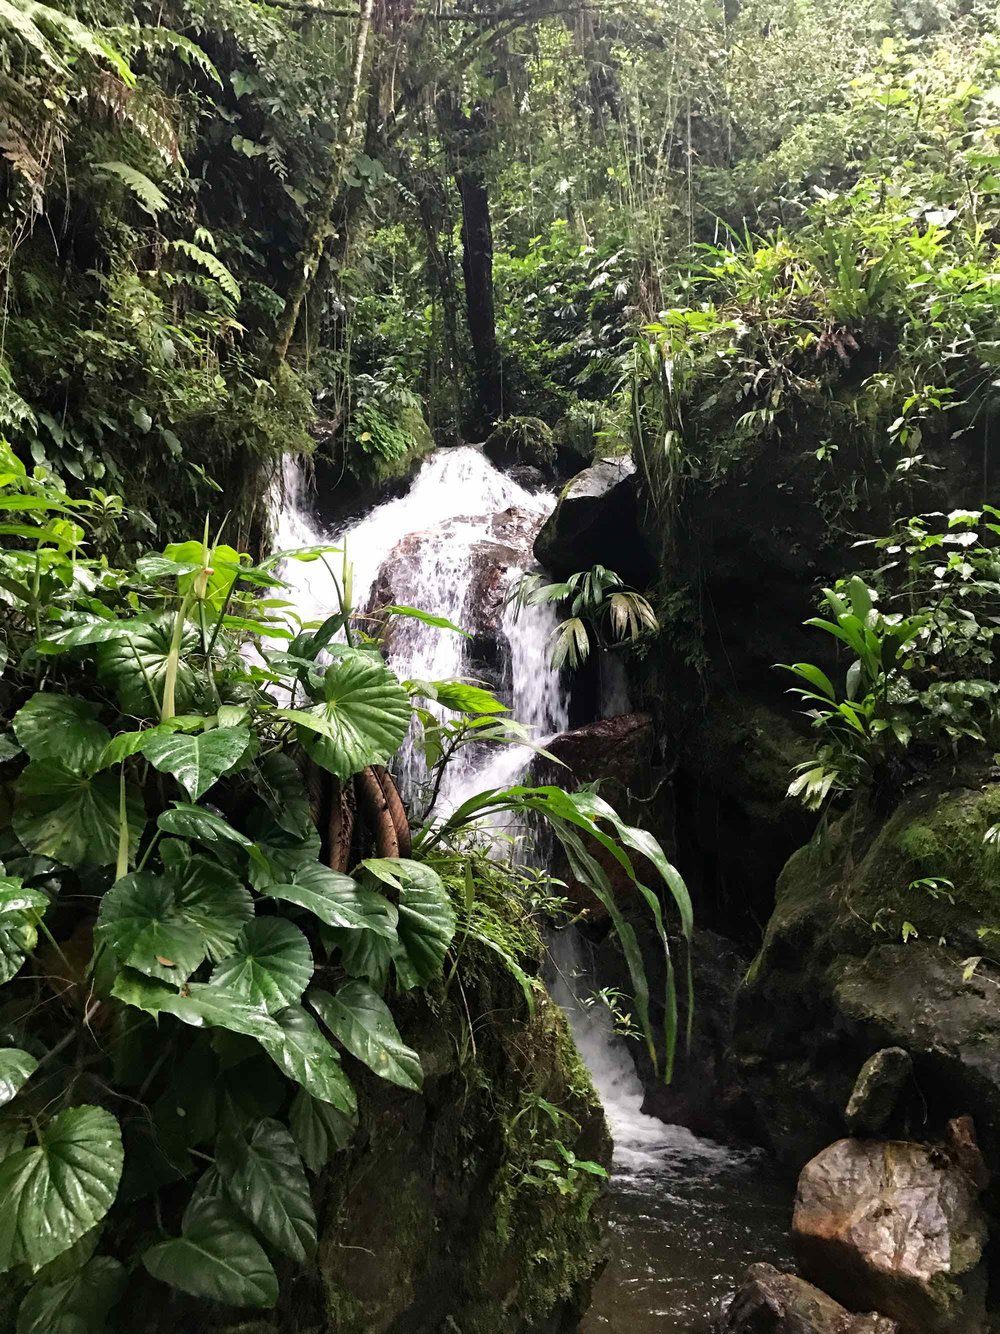 Lost-City-Colombia-hike-river-waterfall3.jpg